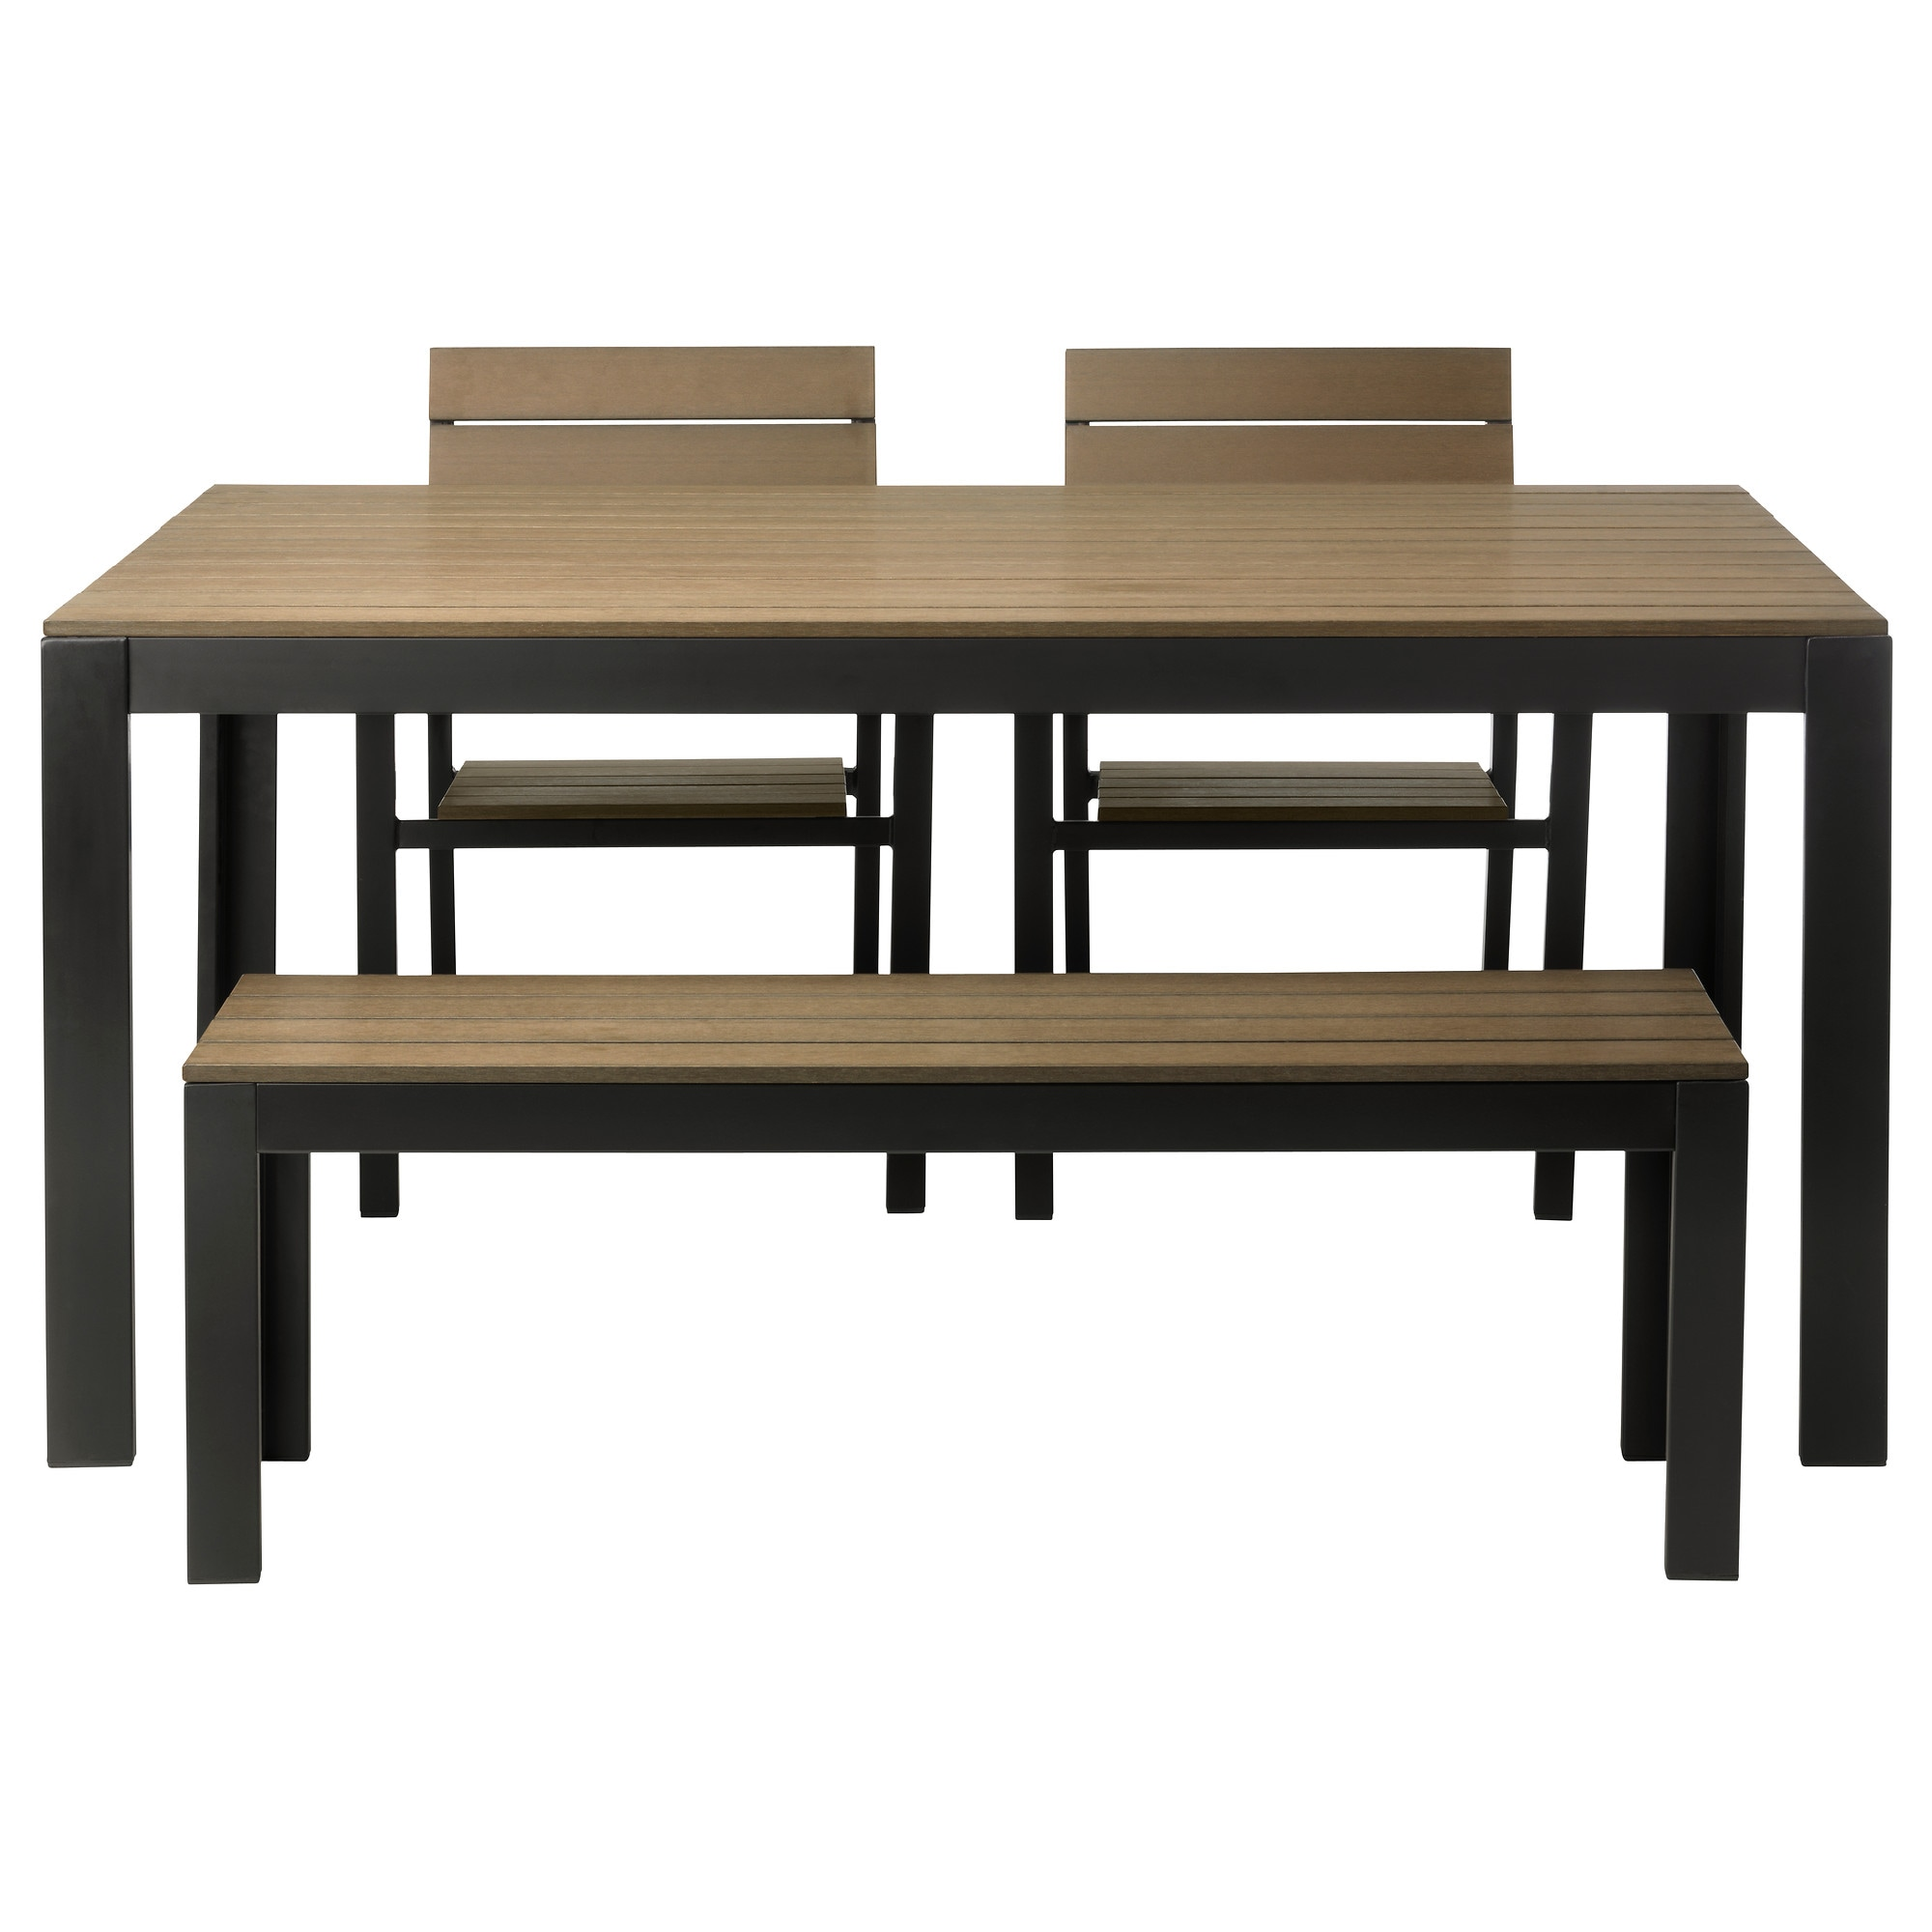 sc 1 st  Ikea & FALSTER Table 2 chairs and bench outdoor - IKEA